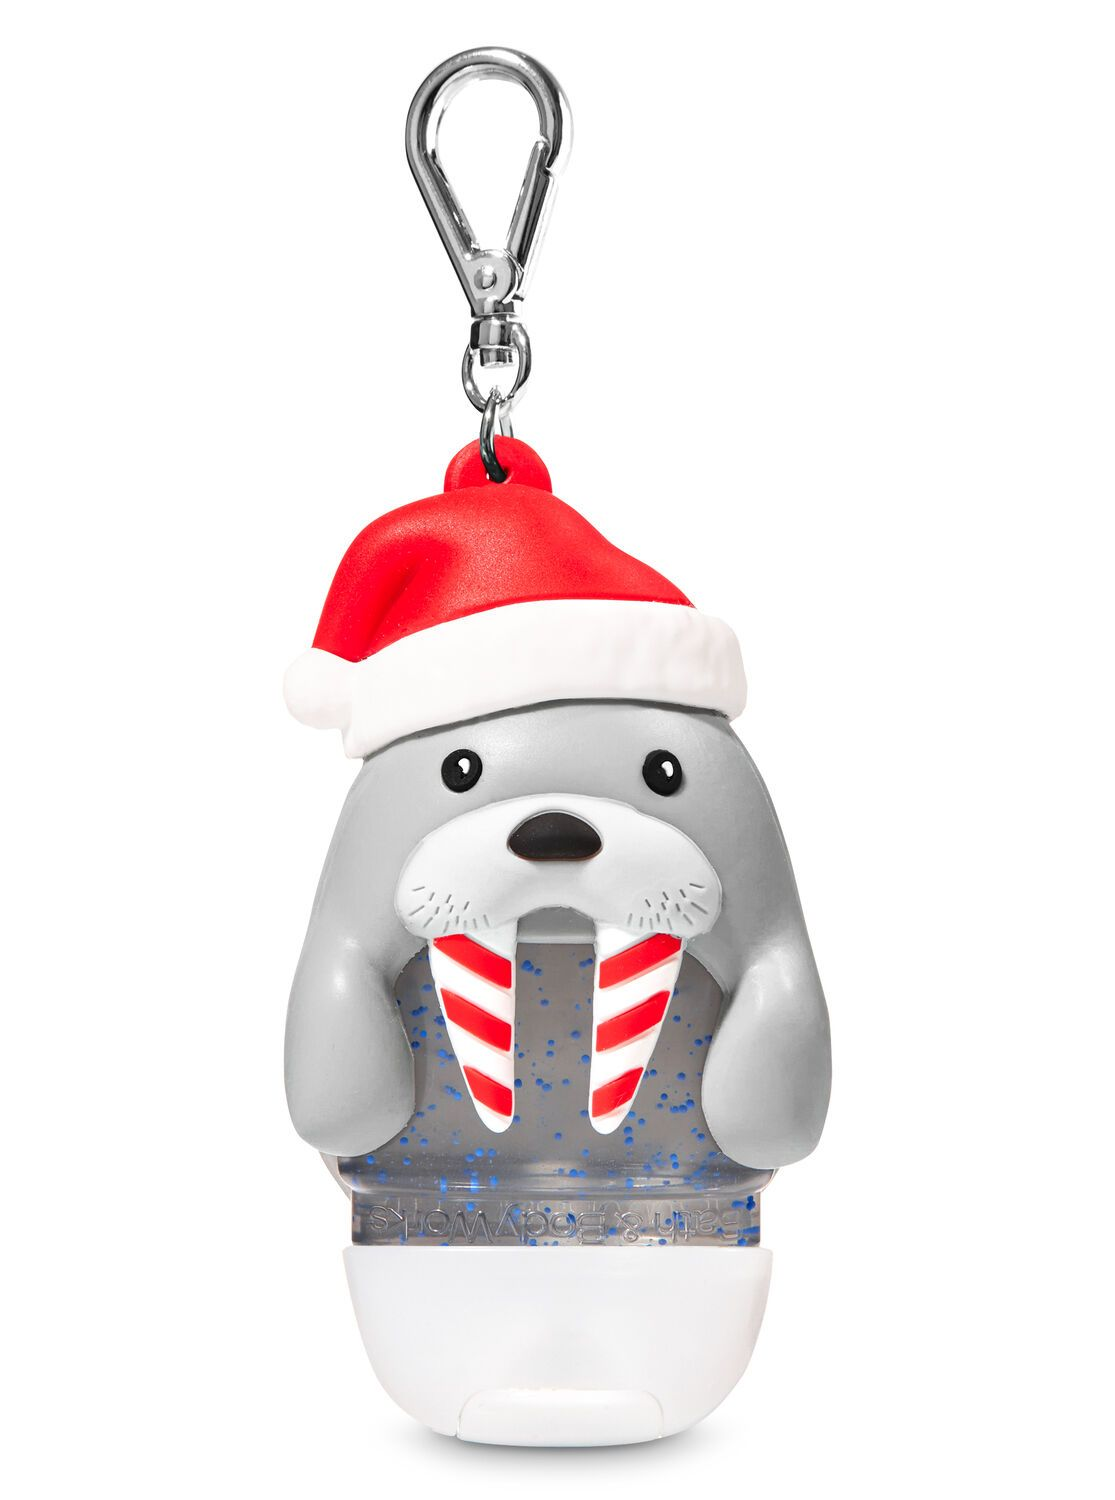 Santa Walrus Pocketbac Holder Hand Sanitizer Holder Bath And